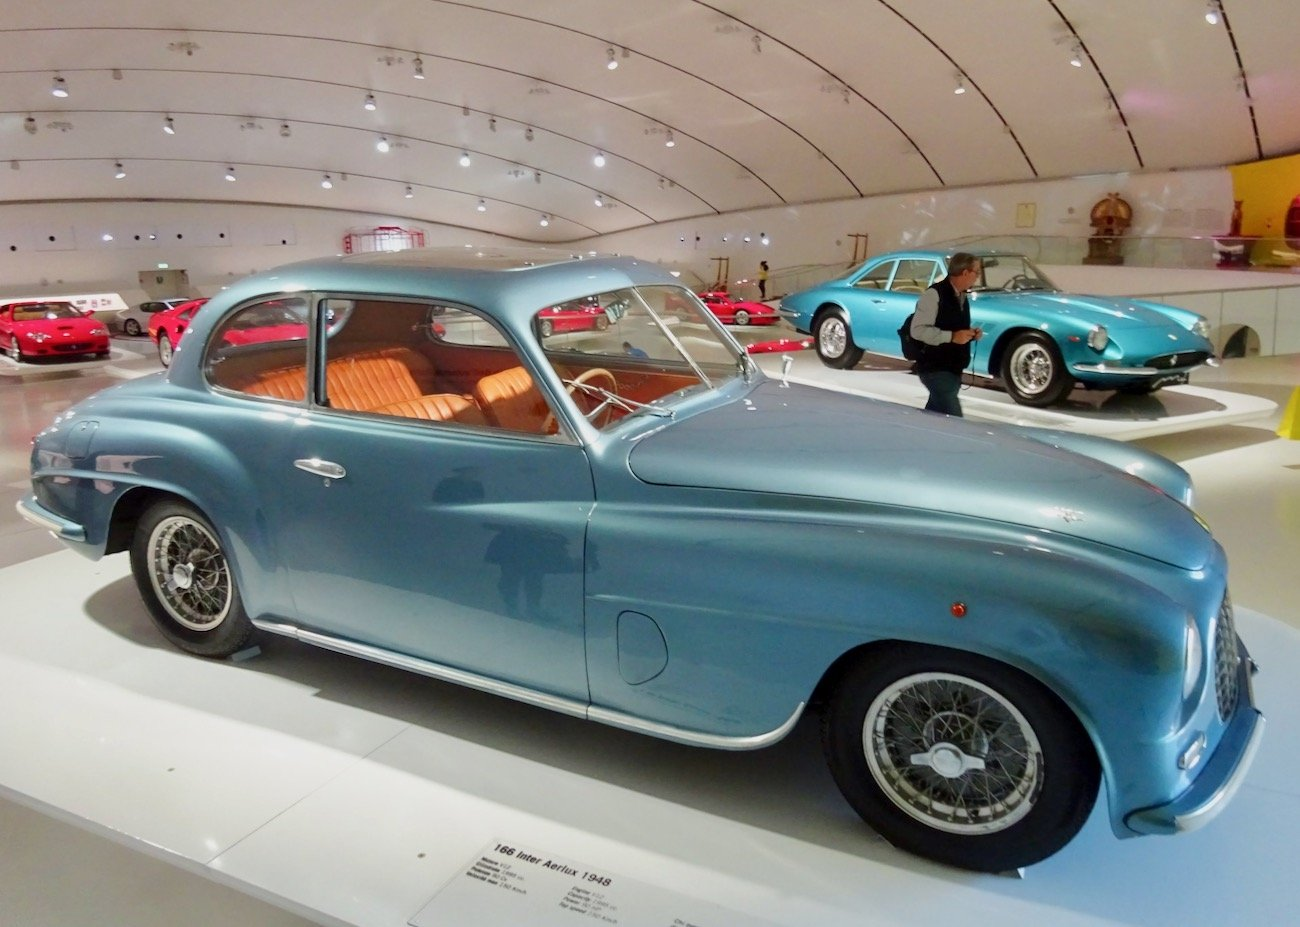 1948 Ferrari 166 Inter Aerlux at the Ferrari Museum in Modena